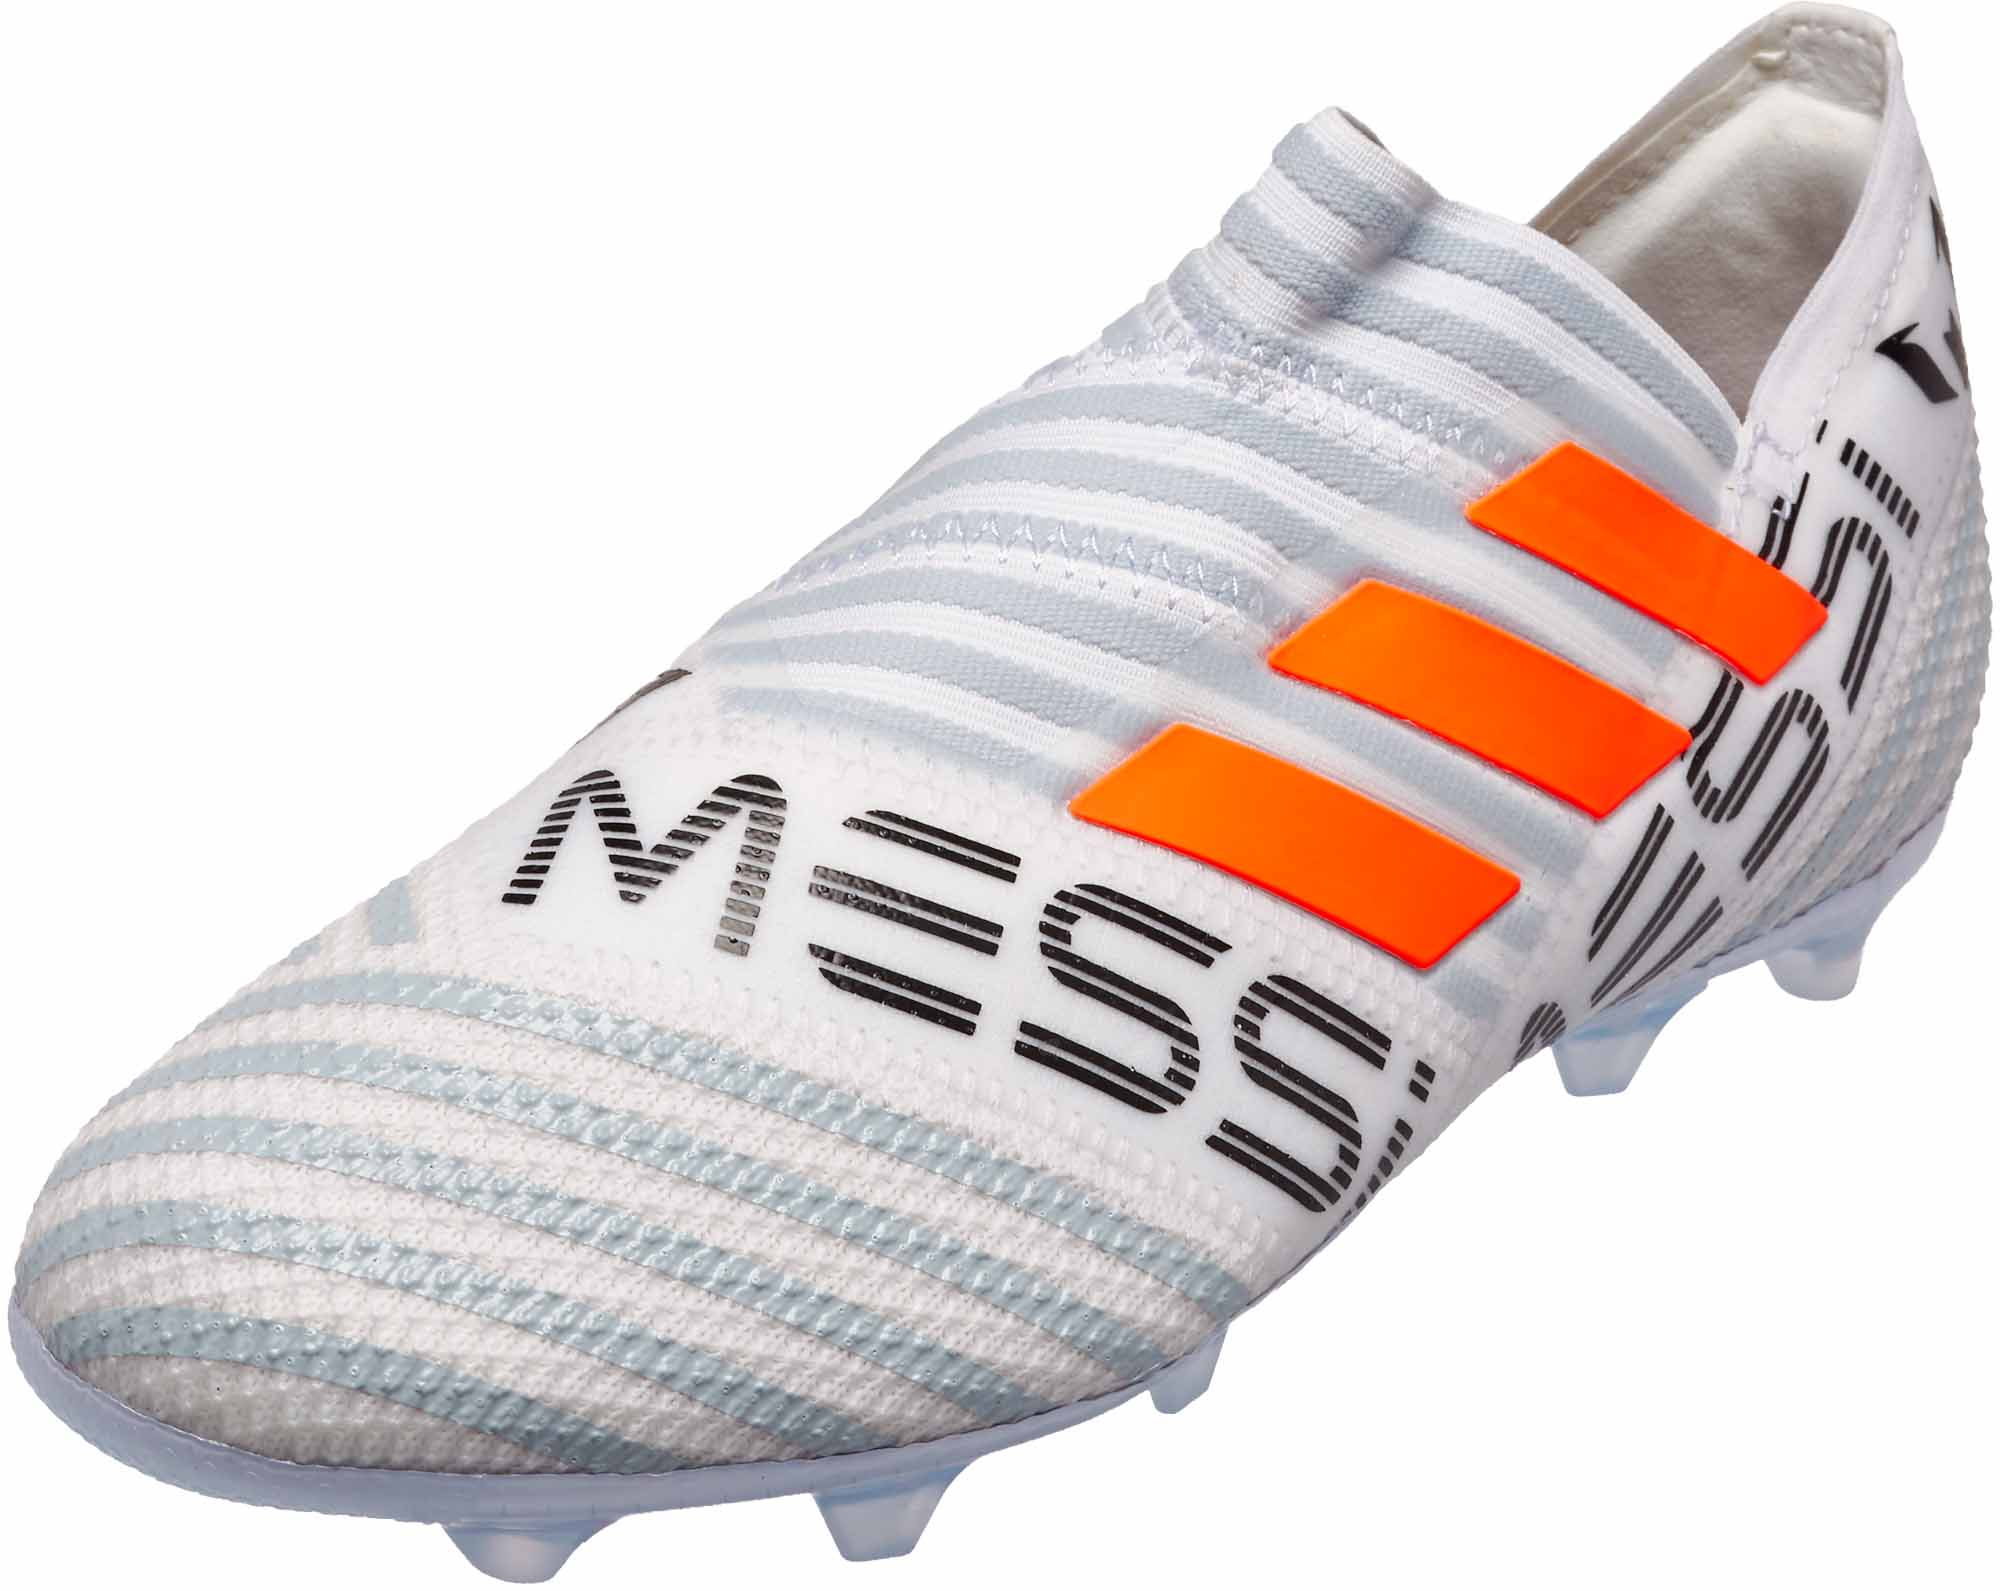 79d6e632e adidas Kids Nemeziz Messi 17 360Agility FG – White Solar Orange